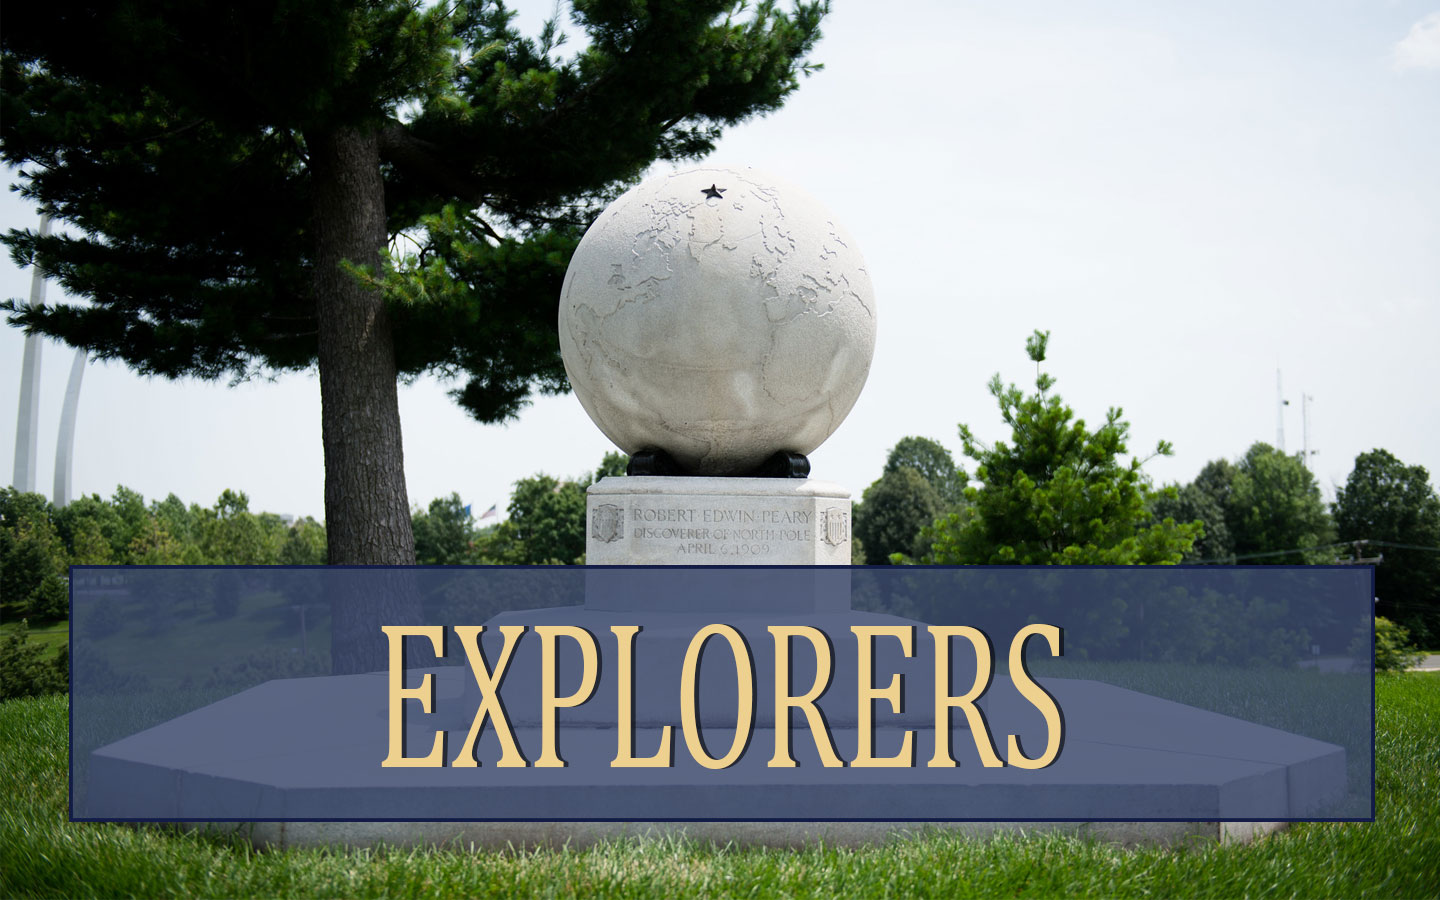 Explorers at Arlington National Cemetery